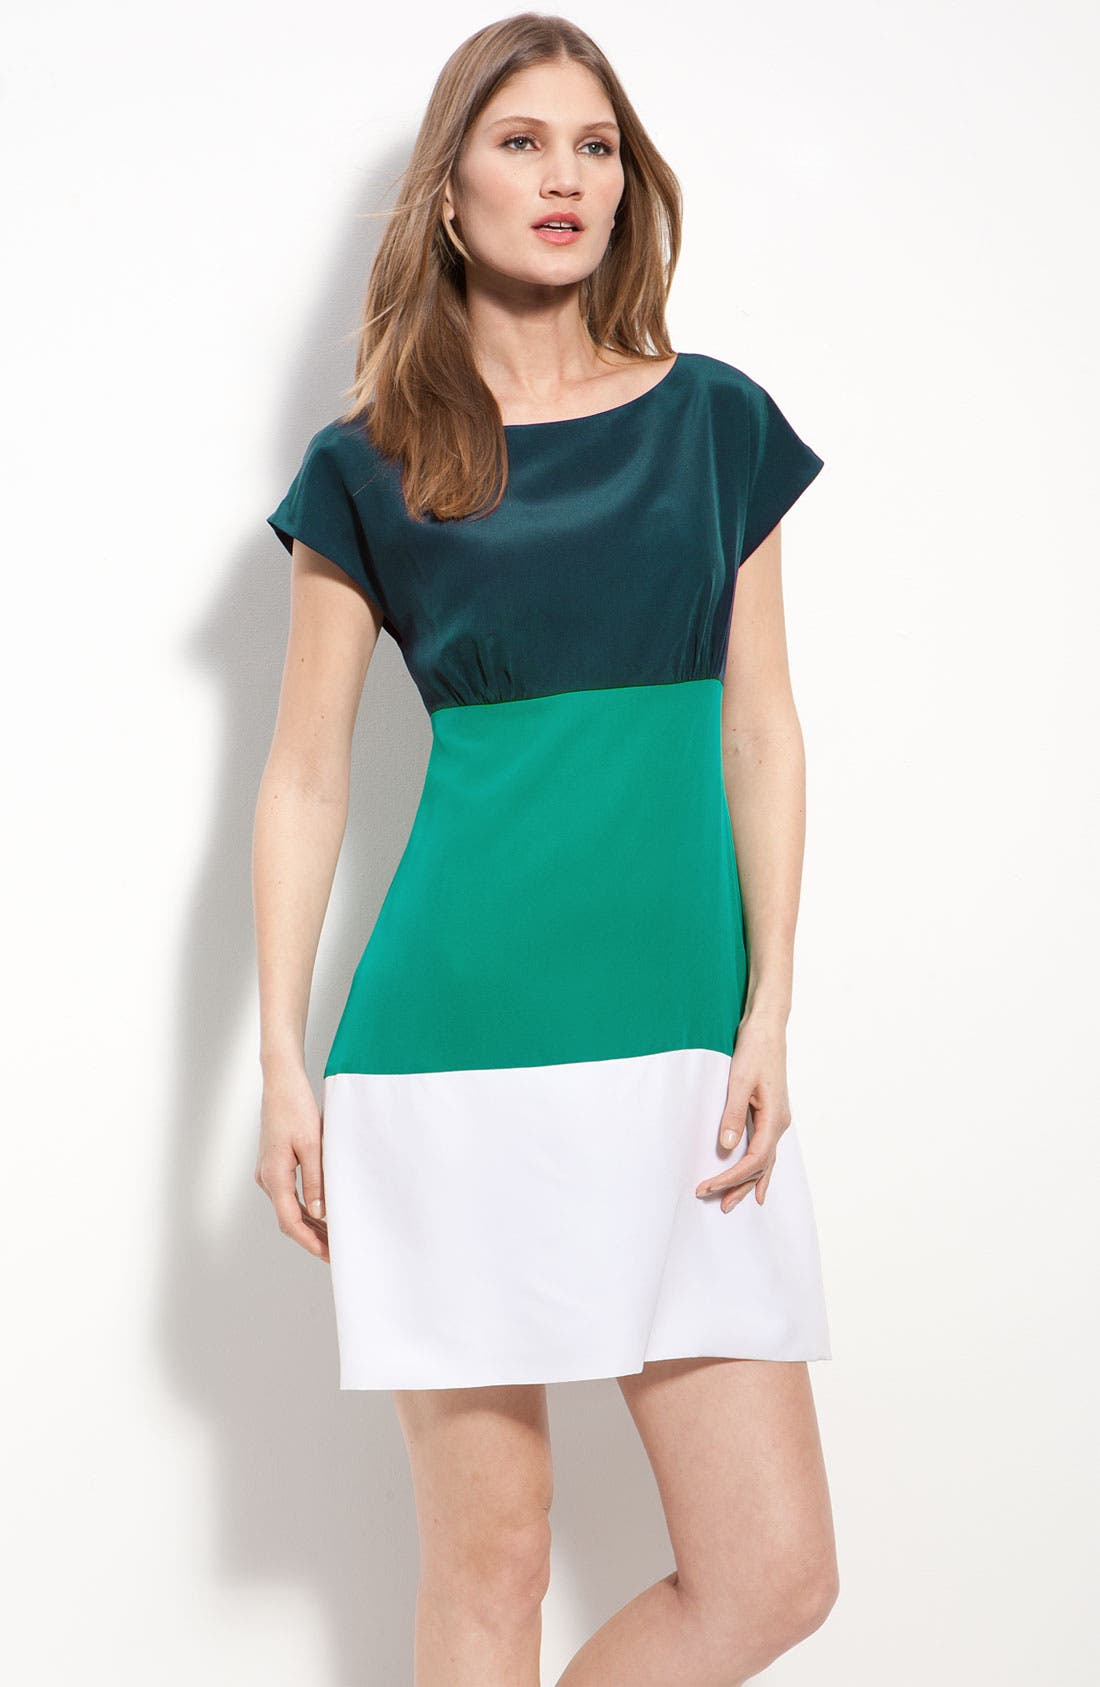 ELIZA J Colorblock Silk Crêpe de Chine Dress, Main, color, 400